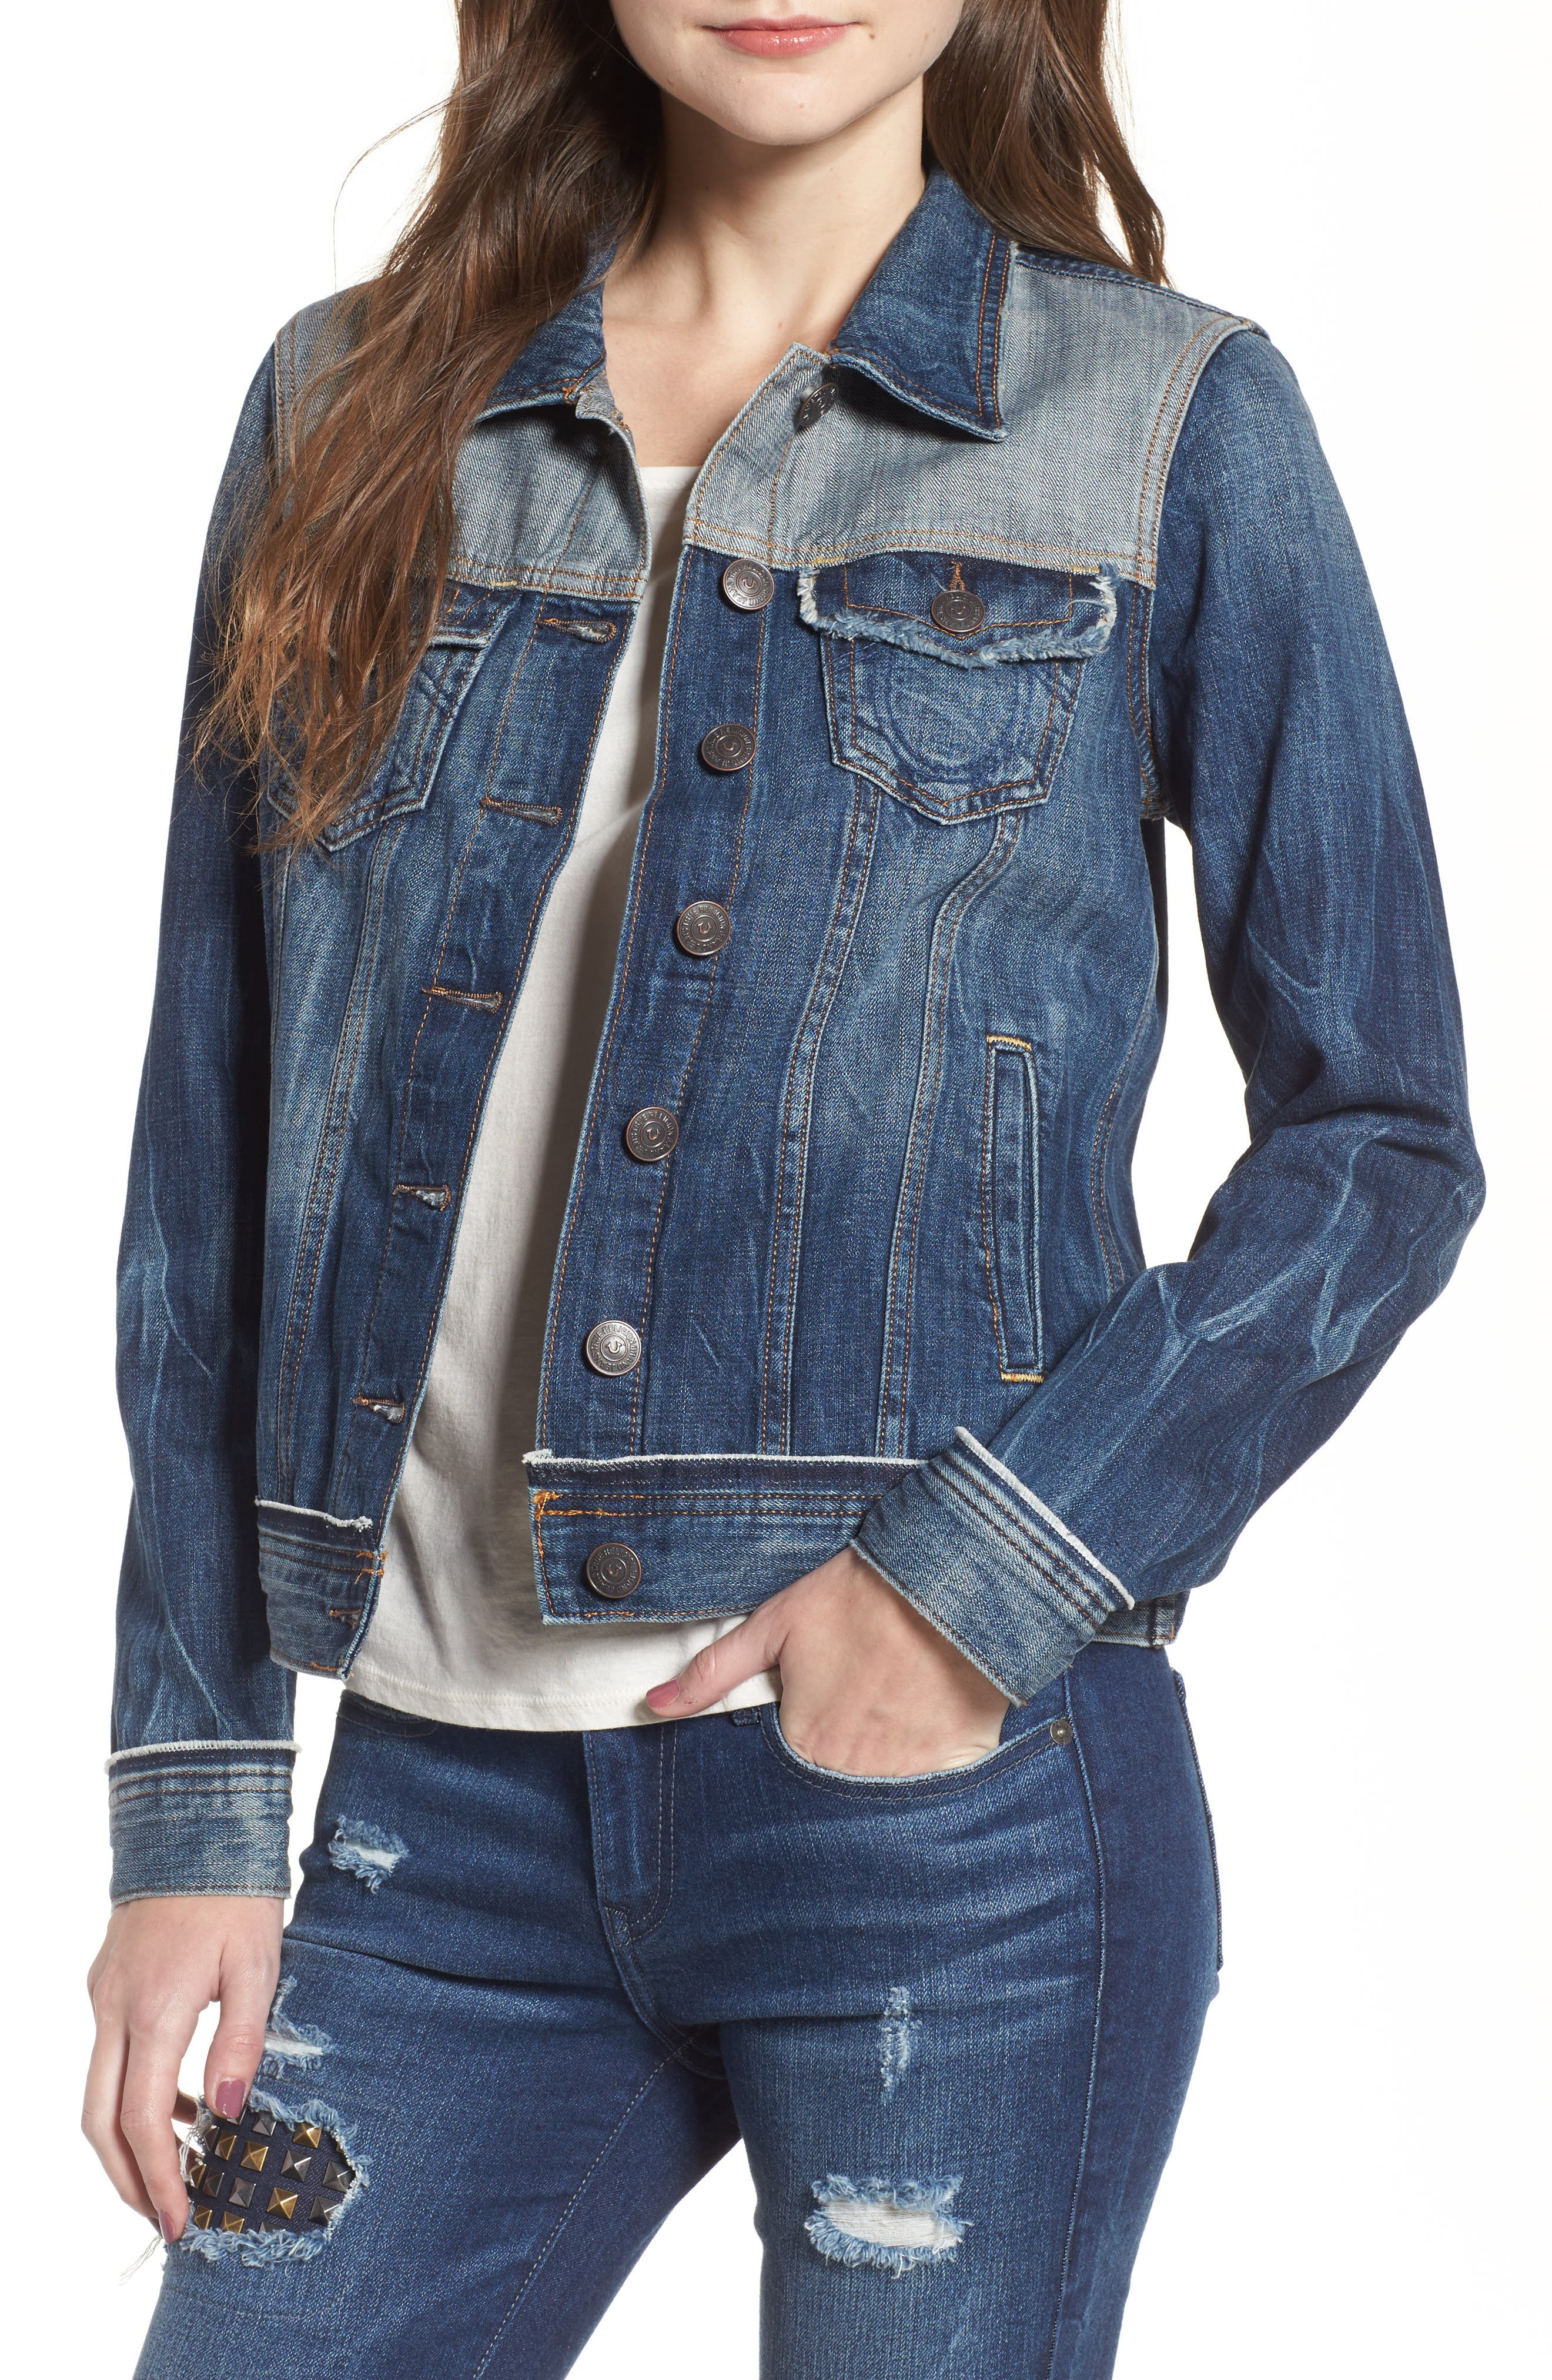 True Religion Brand Jeans Let Out Seams Denim Jacket